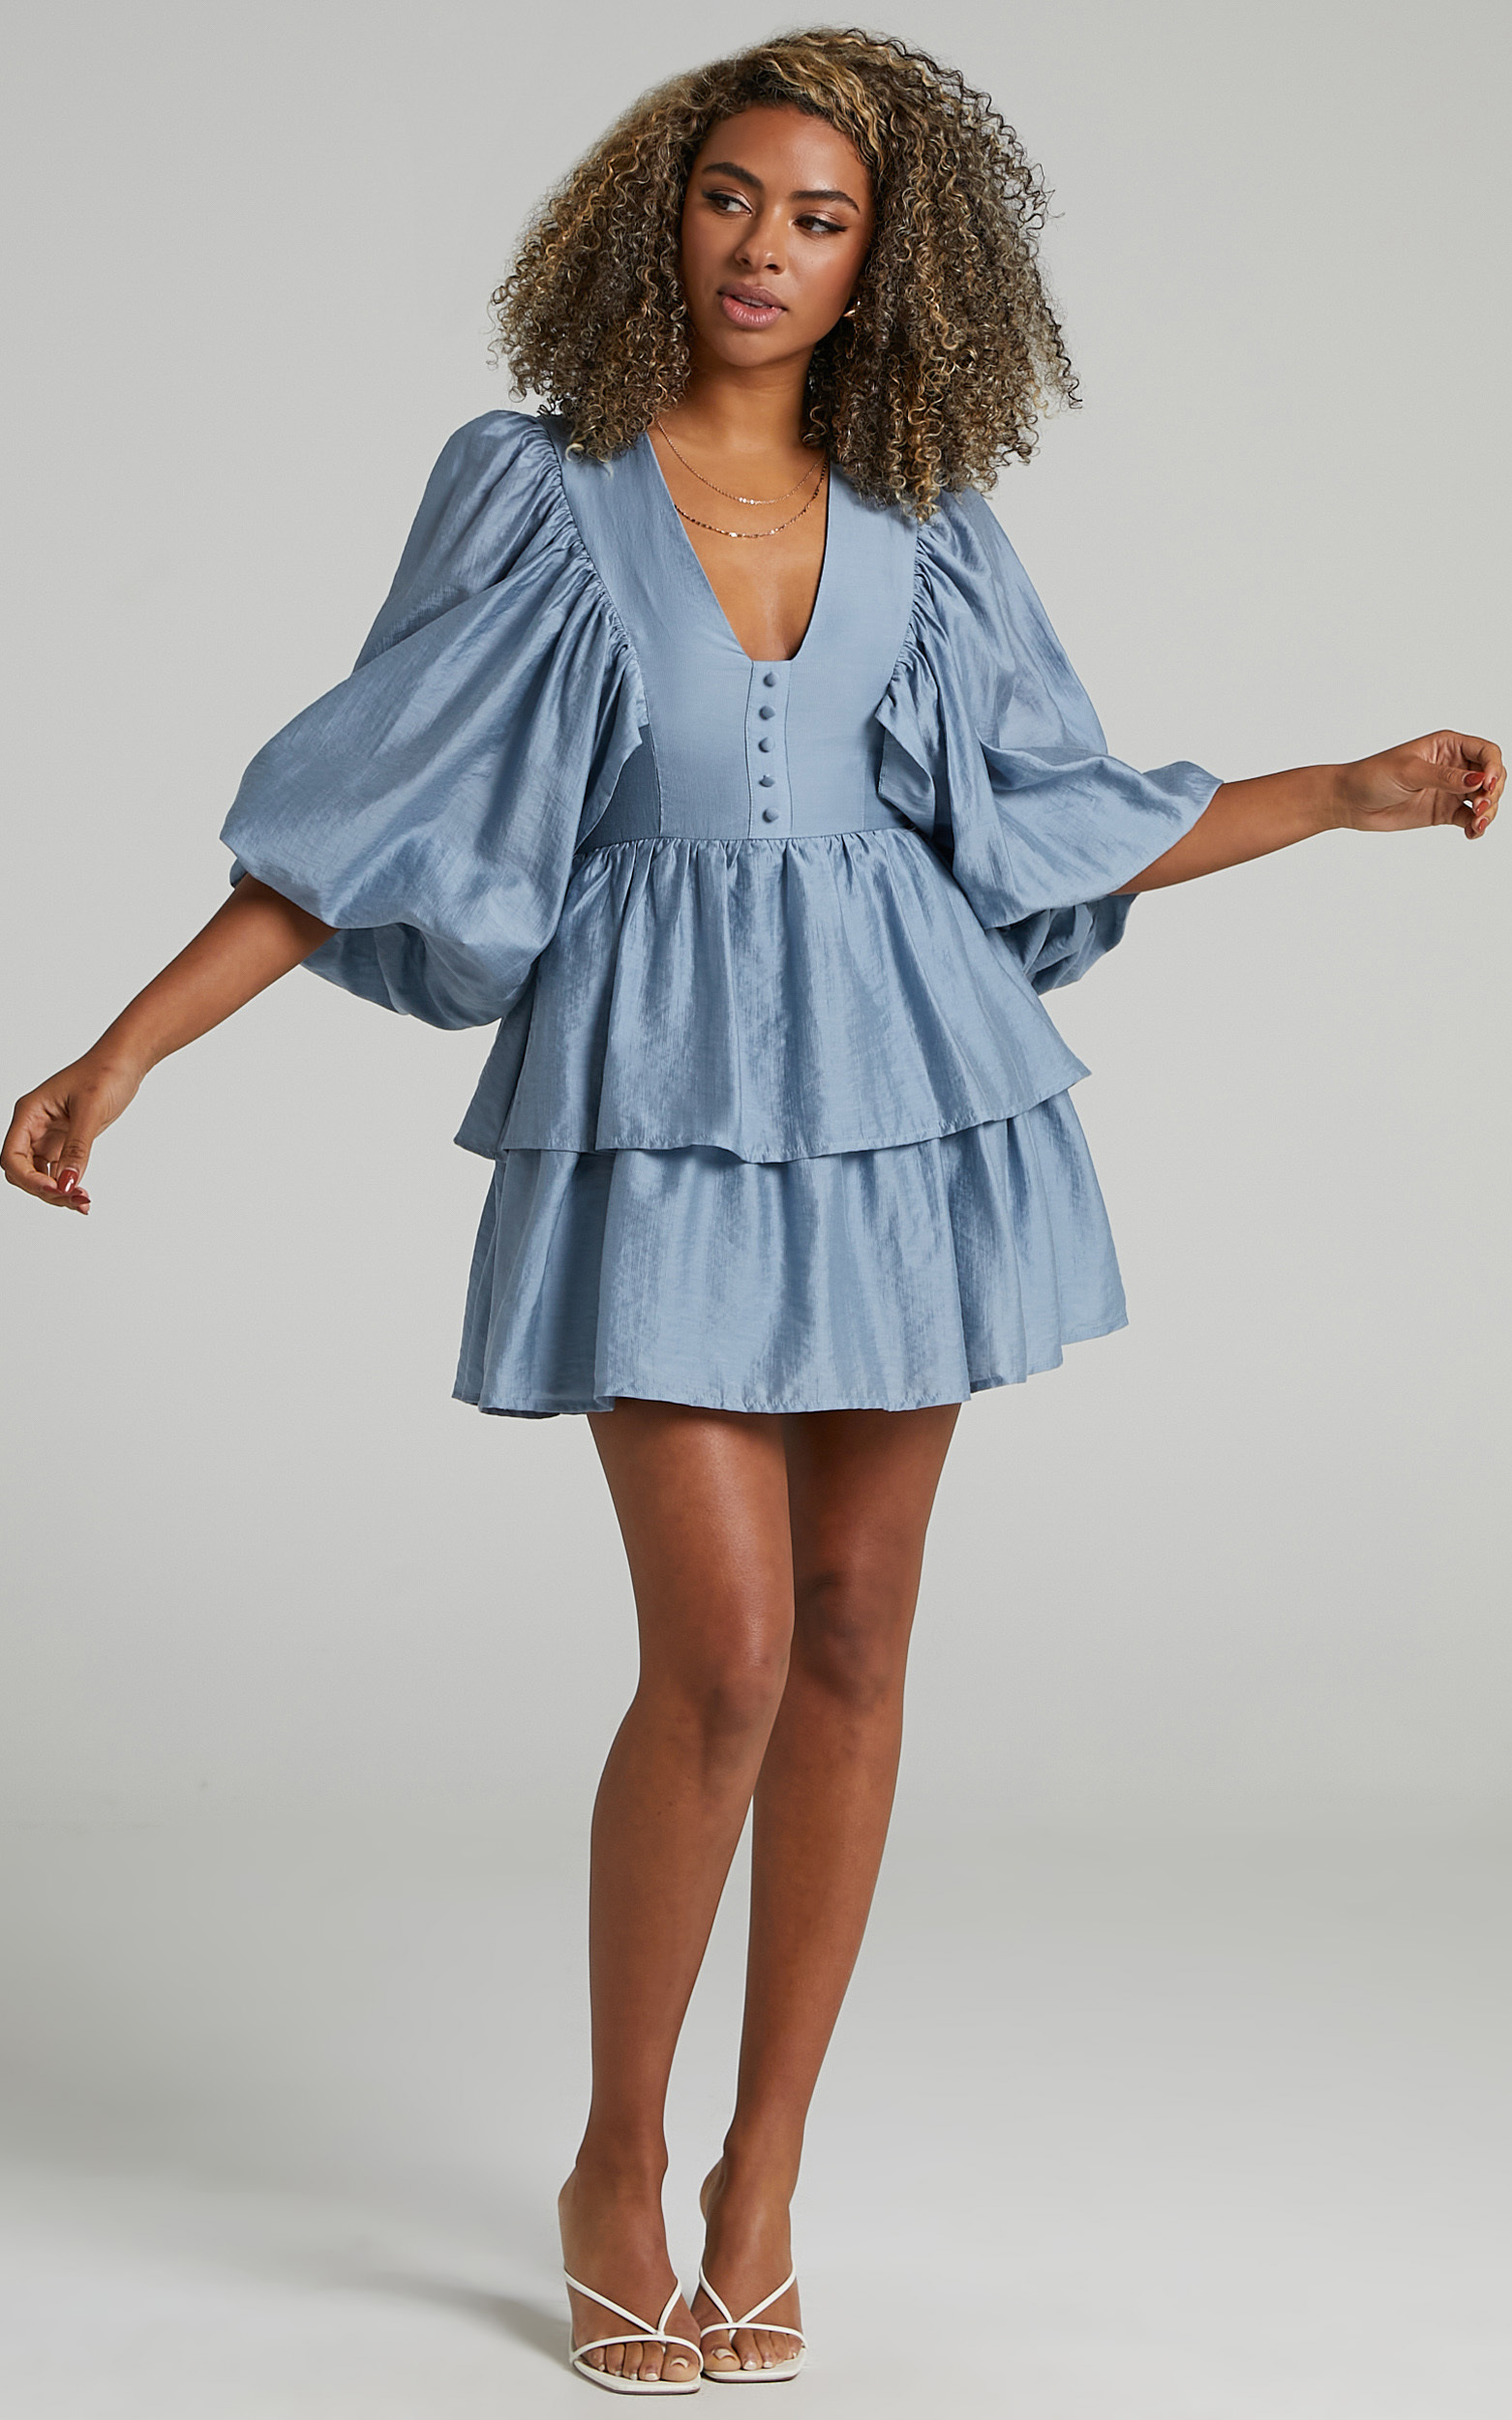 Constance Wide Sleeve Layered Mini Dress in Blue - 06, BLU2, hi-res image number null